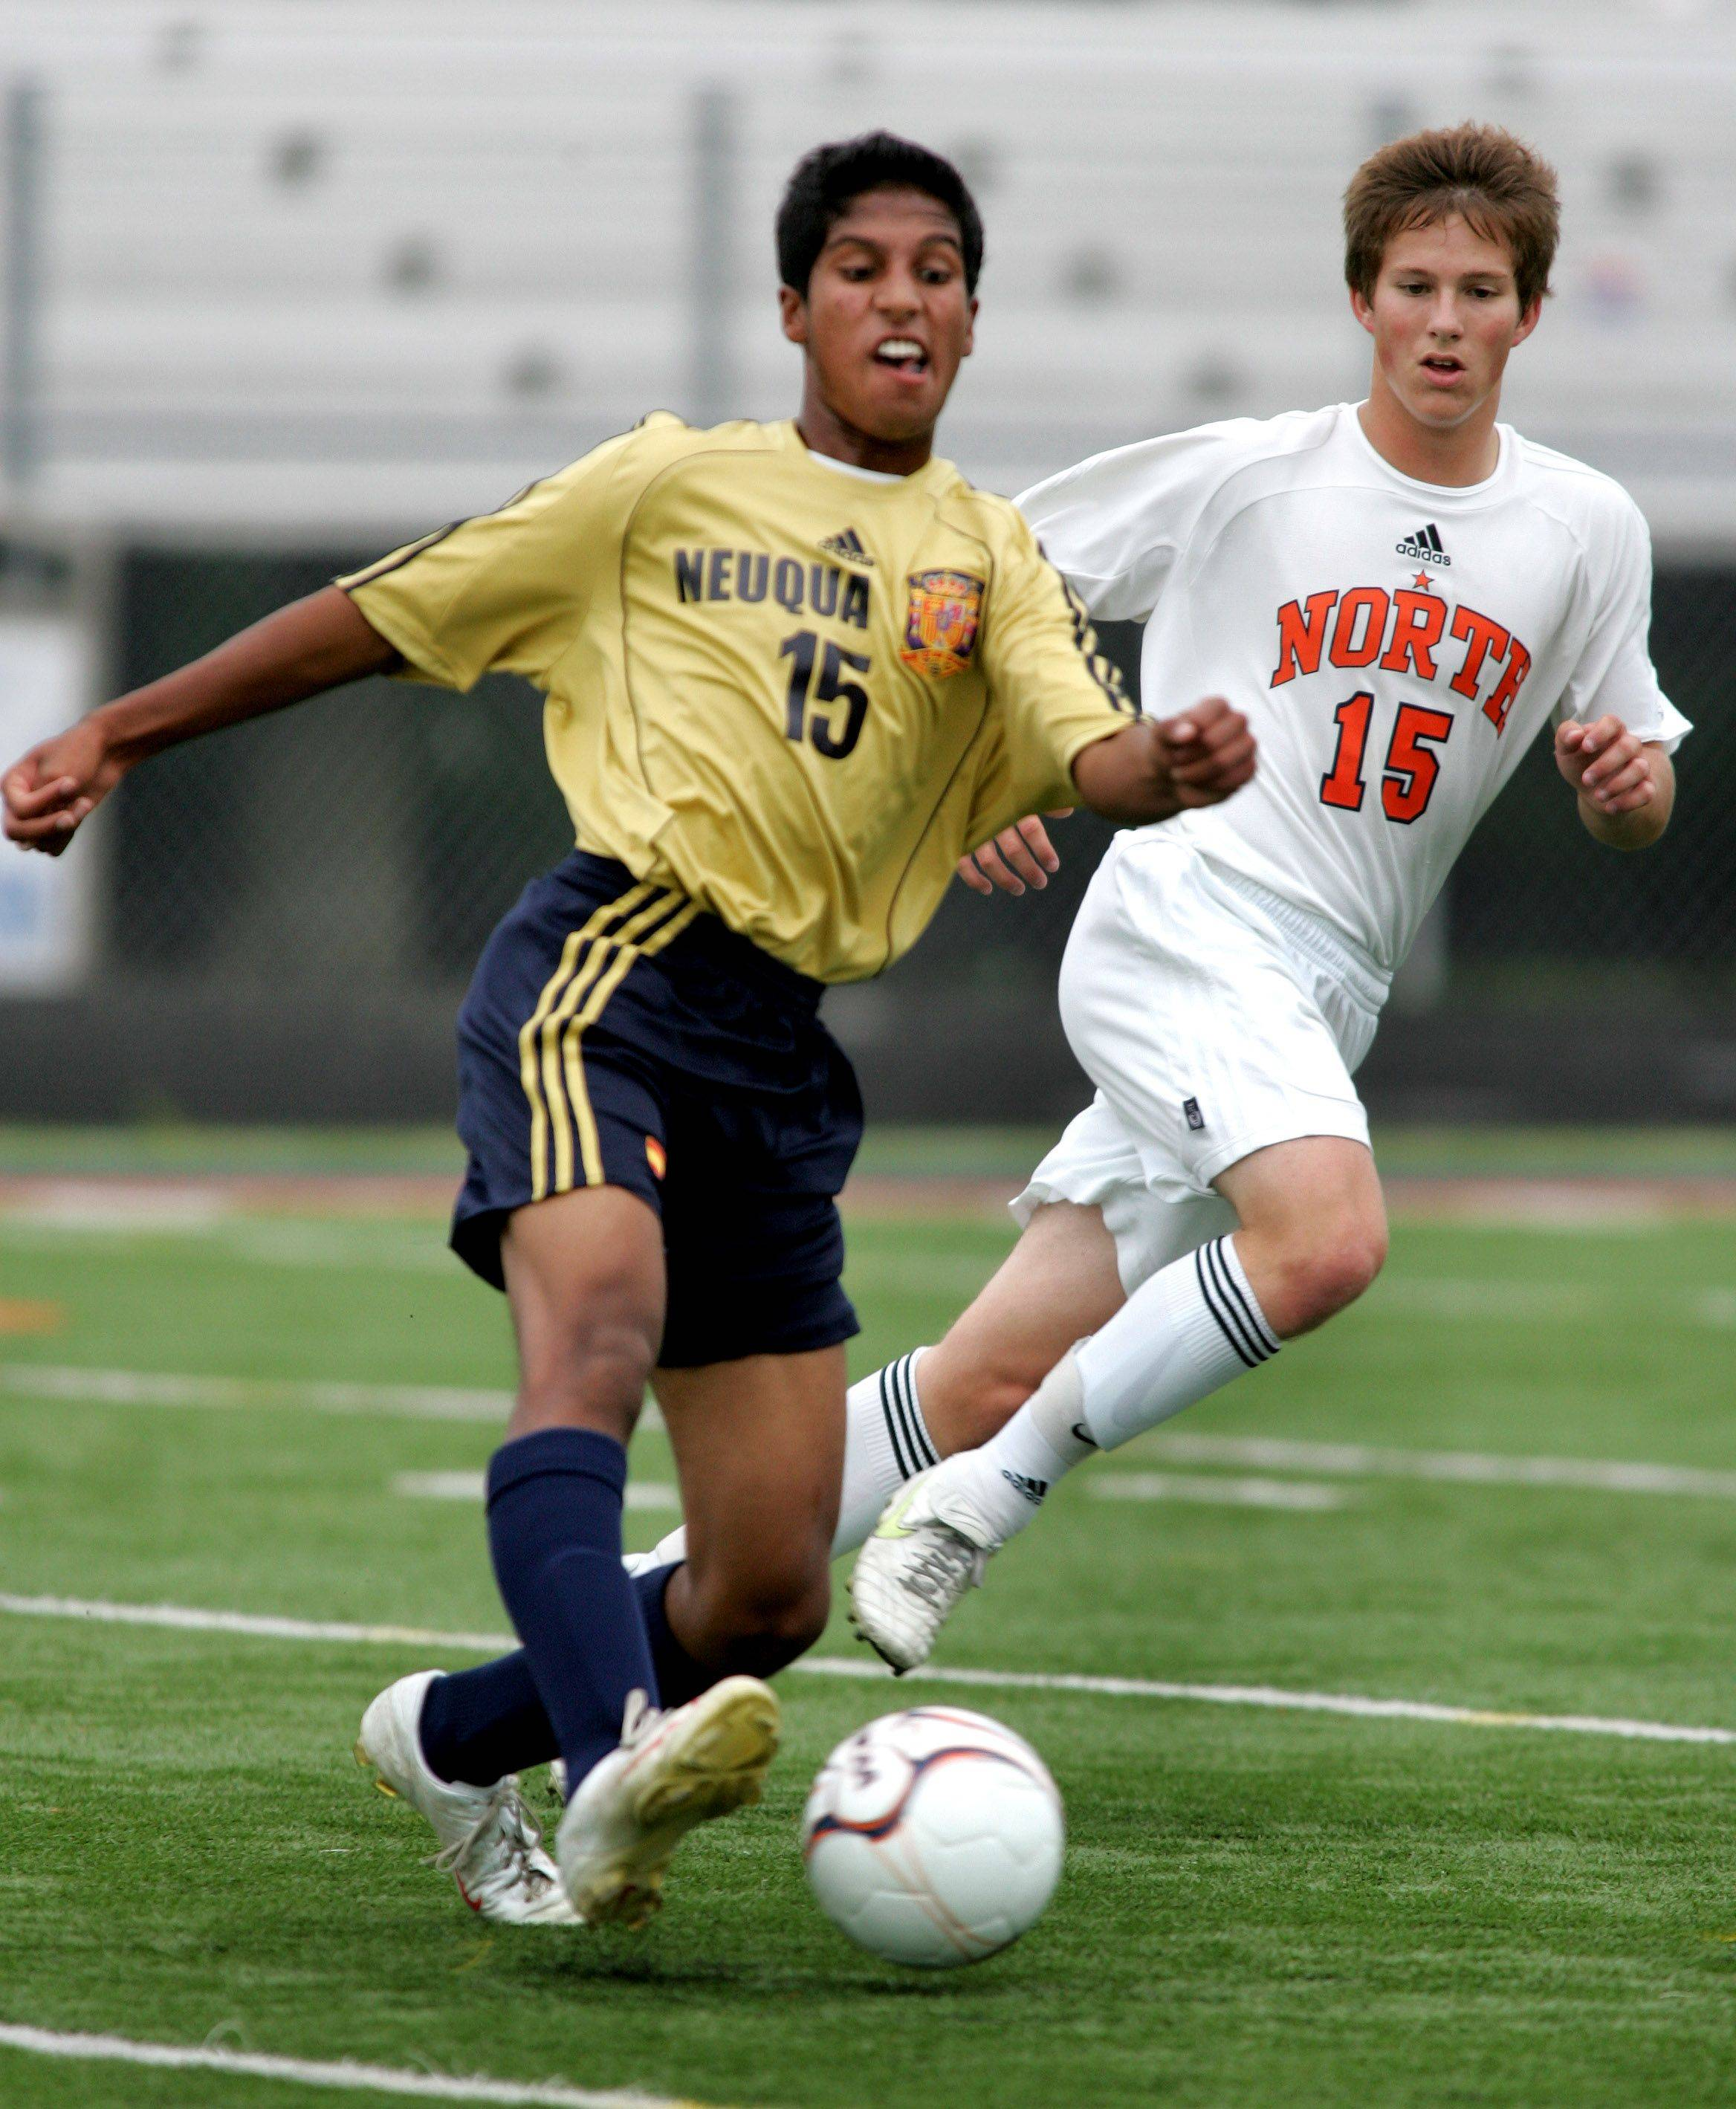 Bev Horne/bhorne@dailyherald.comPaarth Joshl of Neuqua Valley, left, takes control of the ball from Zach Peterson of Naperville North in boys soccer action Tuesday in Naperville.